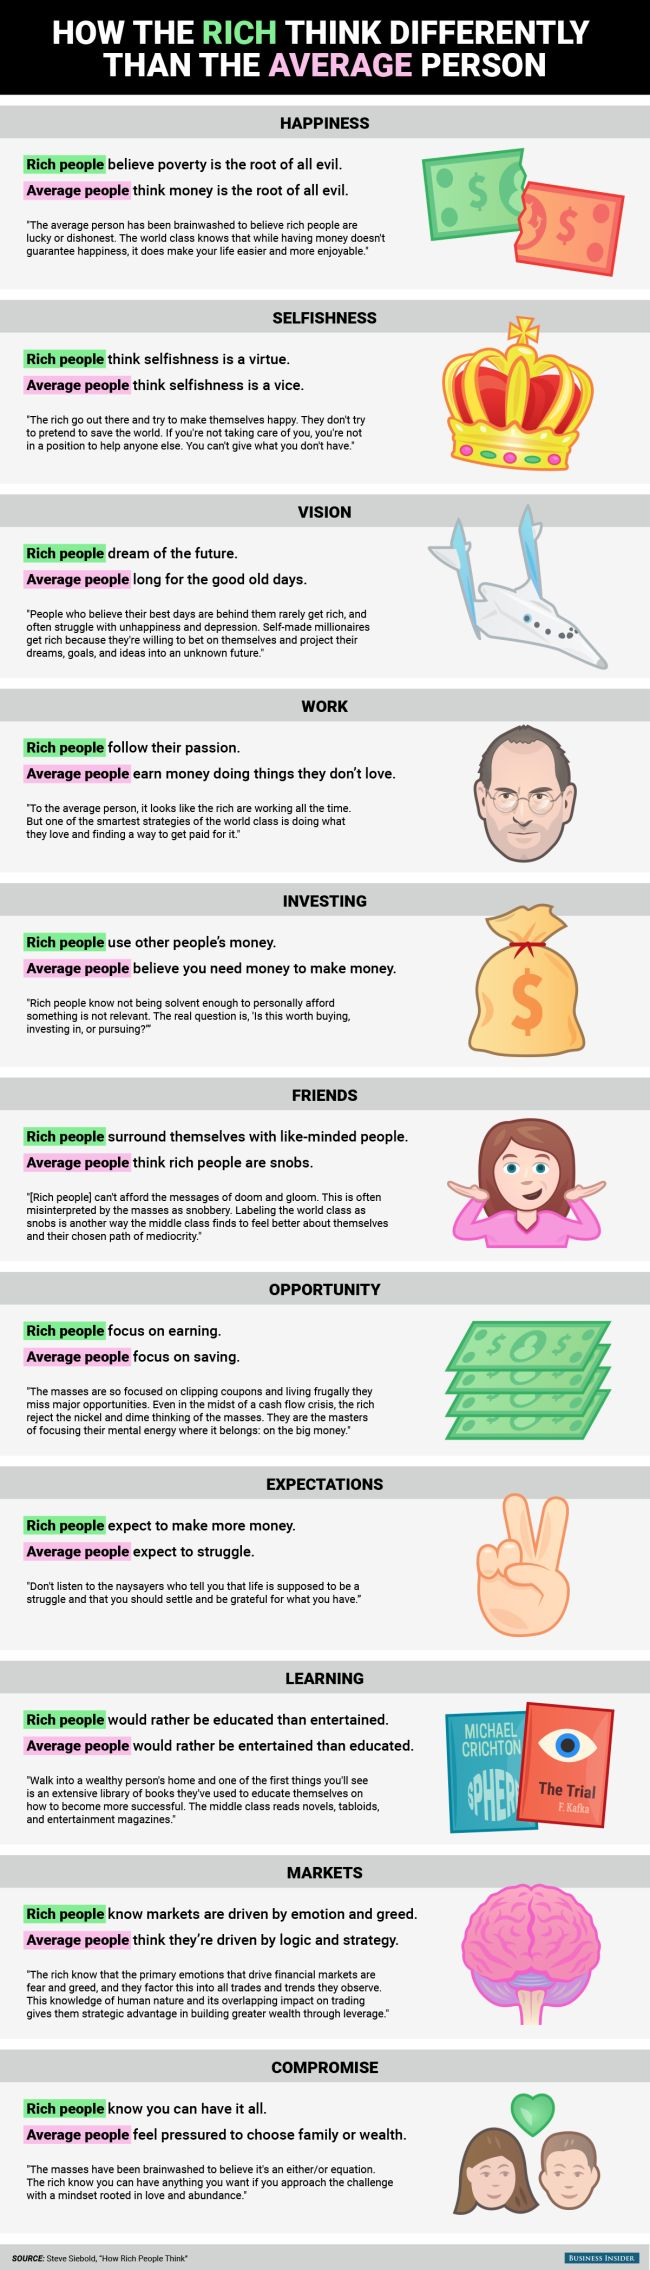 BI_Graphics_How the rich think differently than the average person